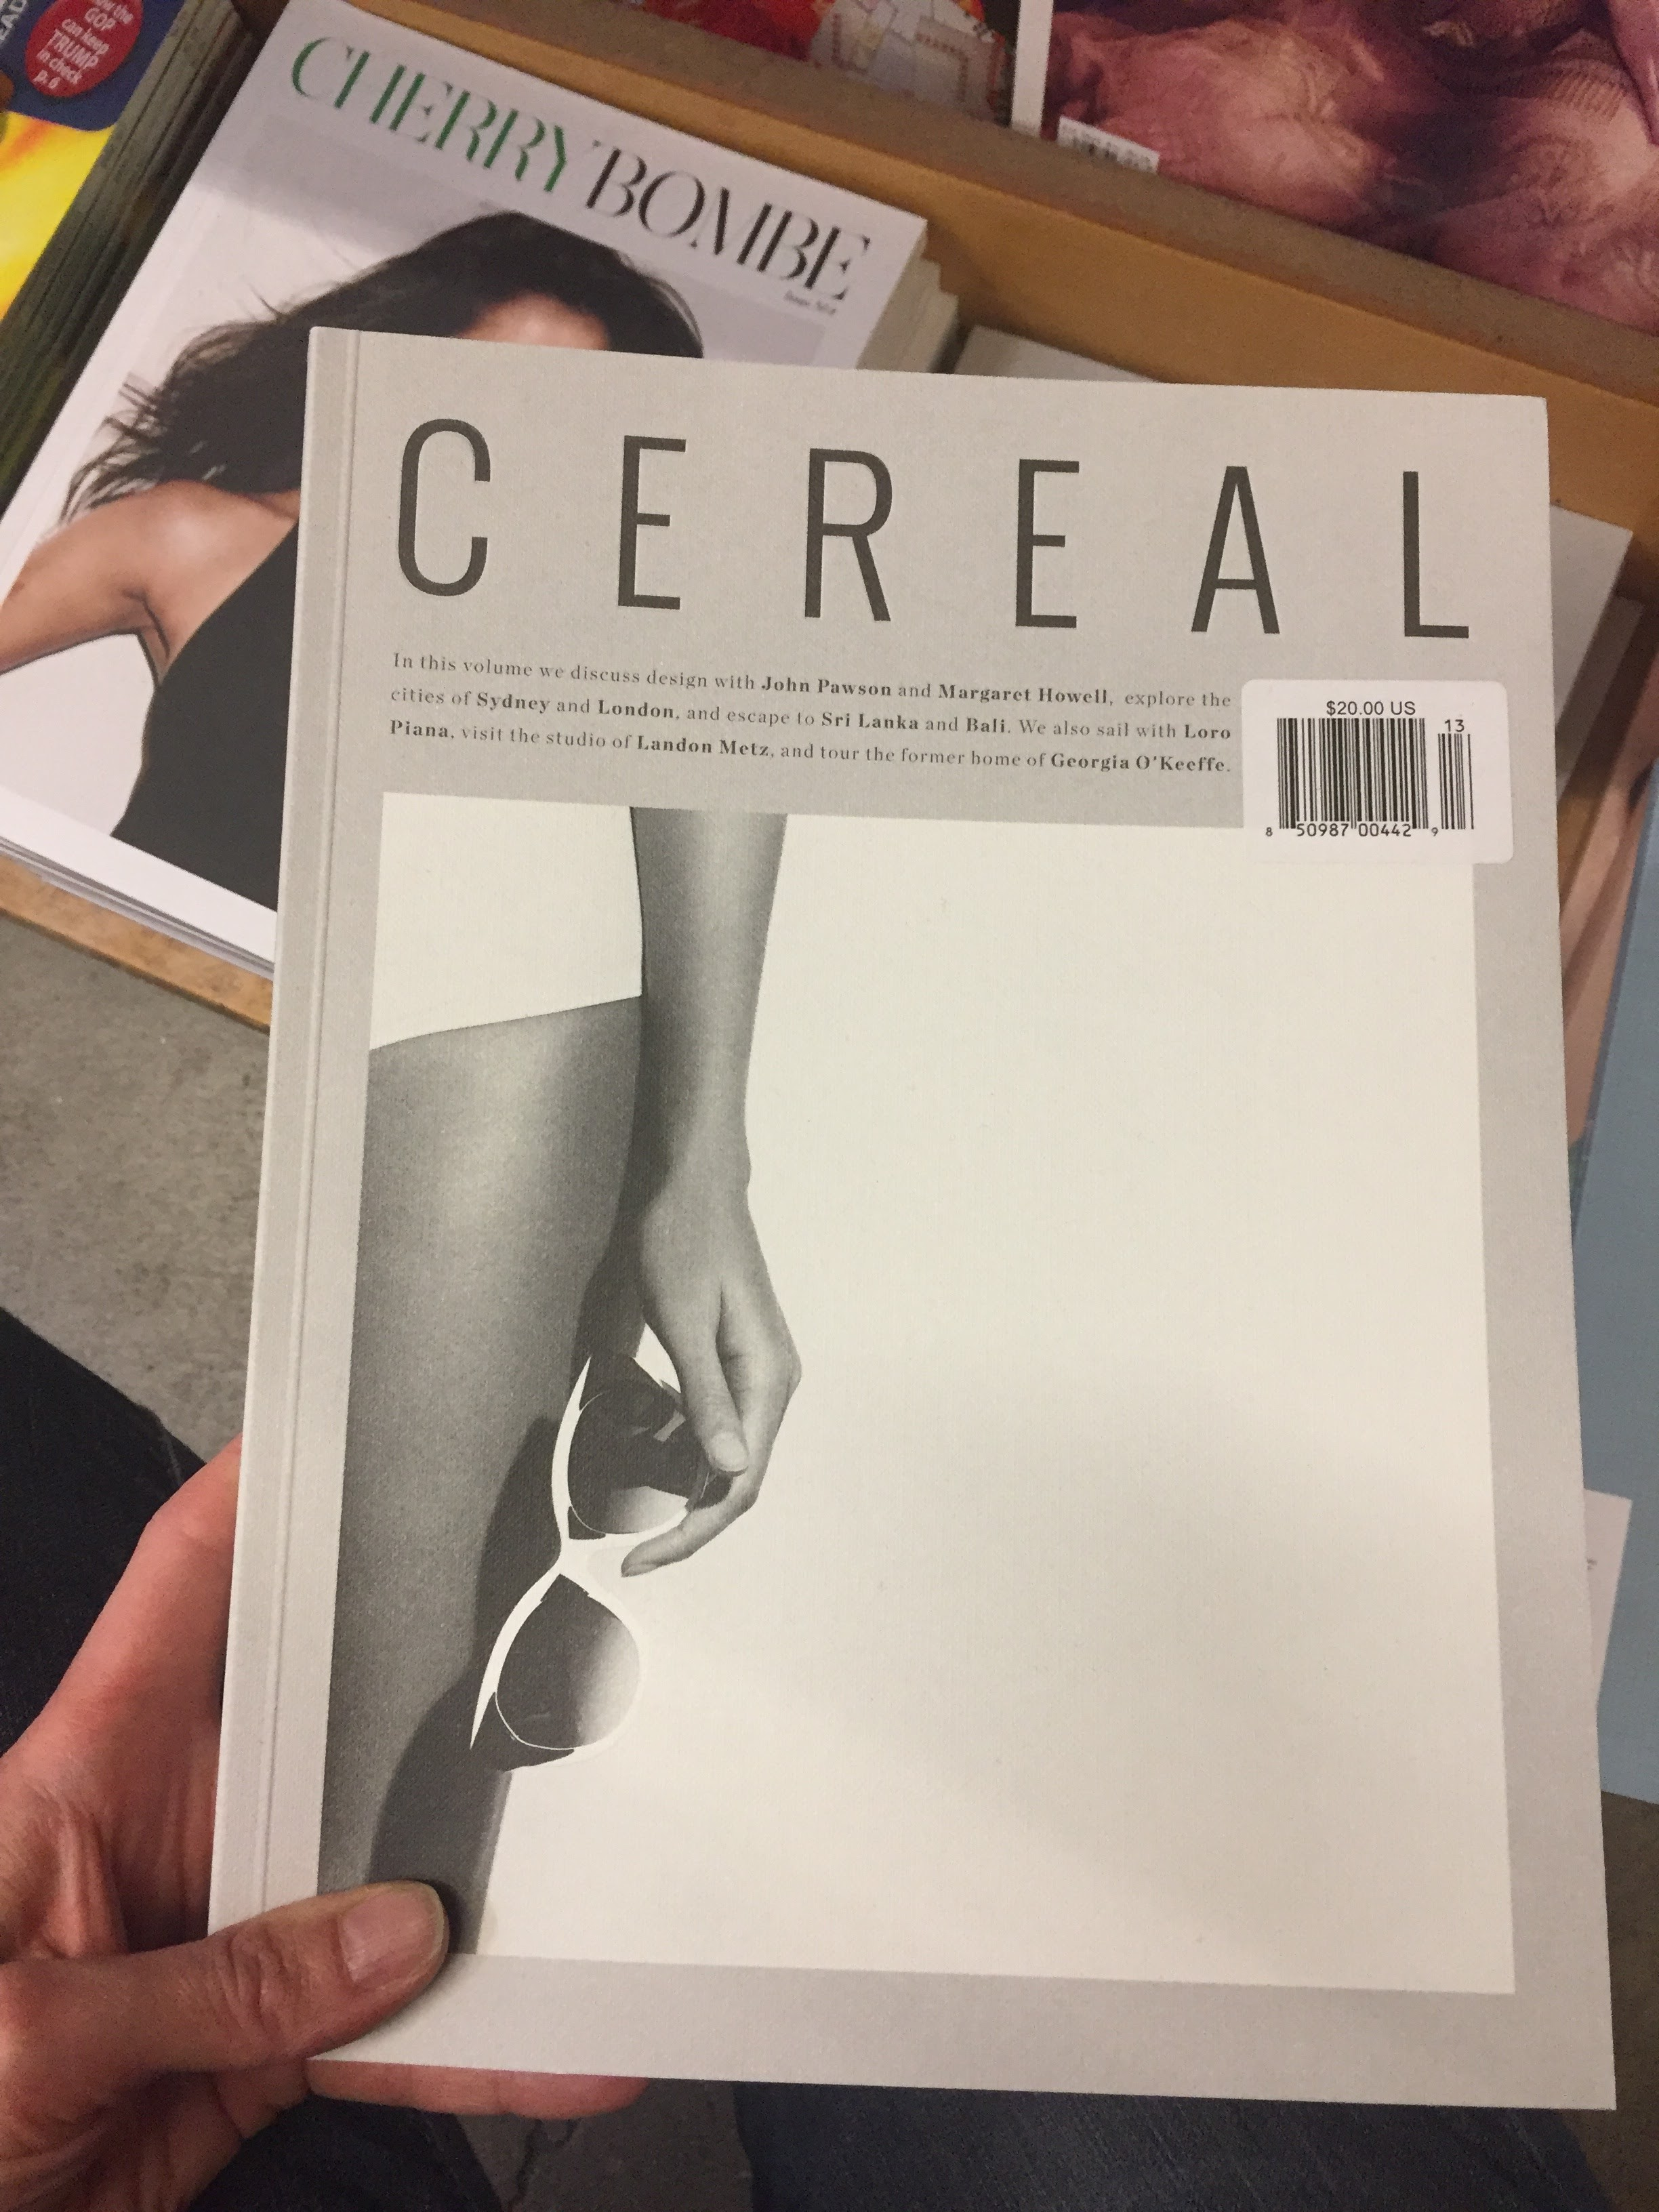 I dislike - cereal but this isn't about the soggy-factor and milk. I took an image like this year's ago, so I think, aesthetically, I'm on the same page as the creative director. Trying it.